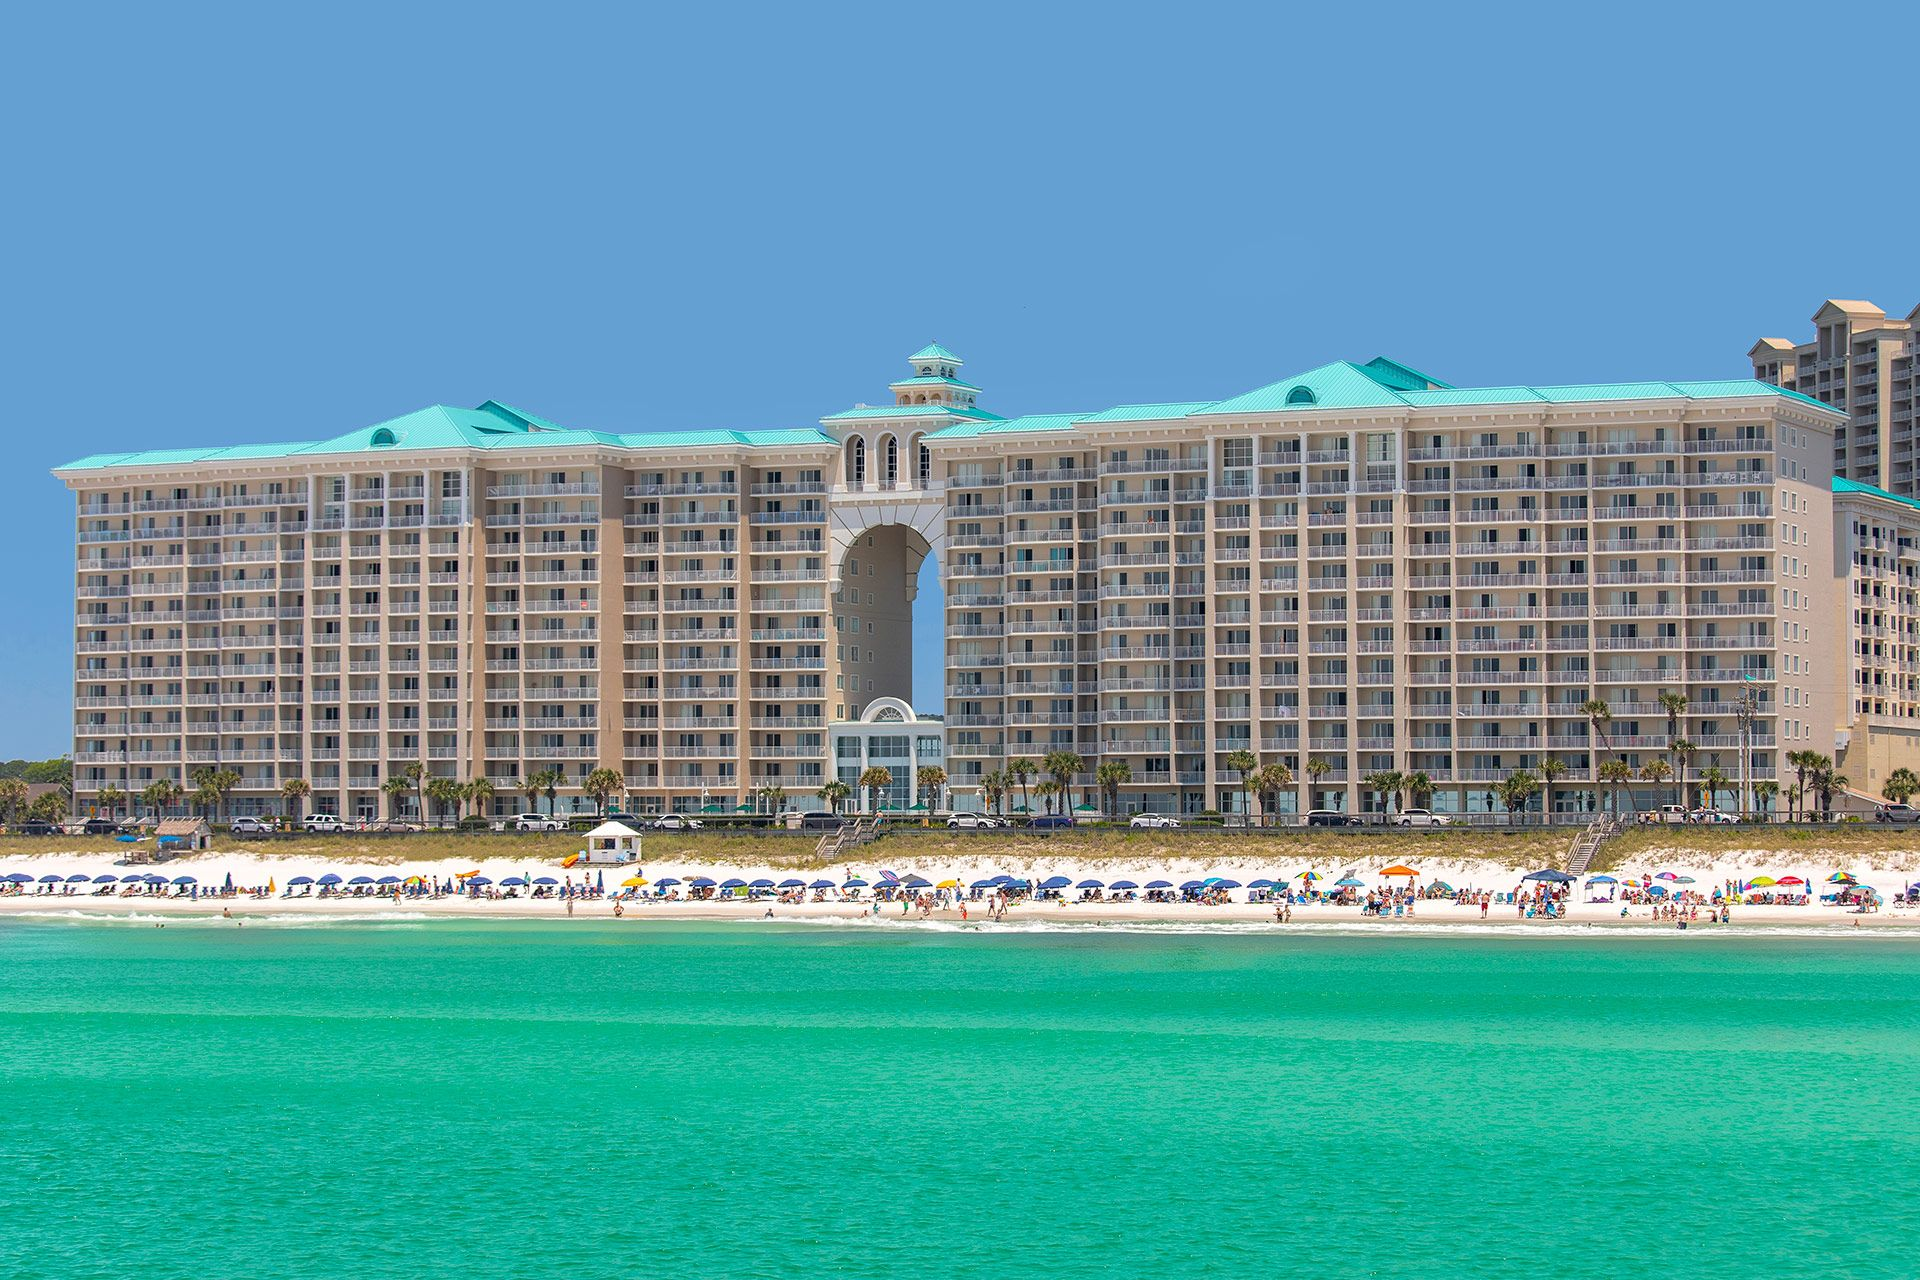 These Are The Fastest Reserving 2 Bedroom Vacation Rentals At The Majestic Sun In 2020 Florida Hotels Hotels In Destin Florida Destin Florida Vacation